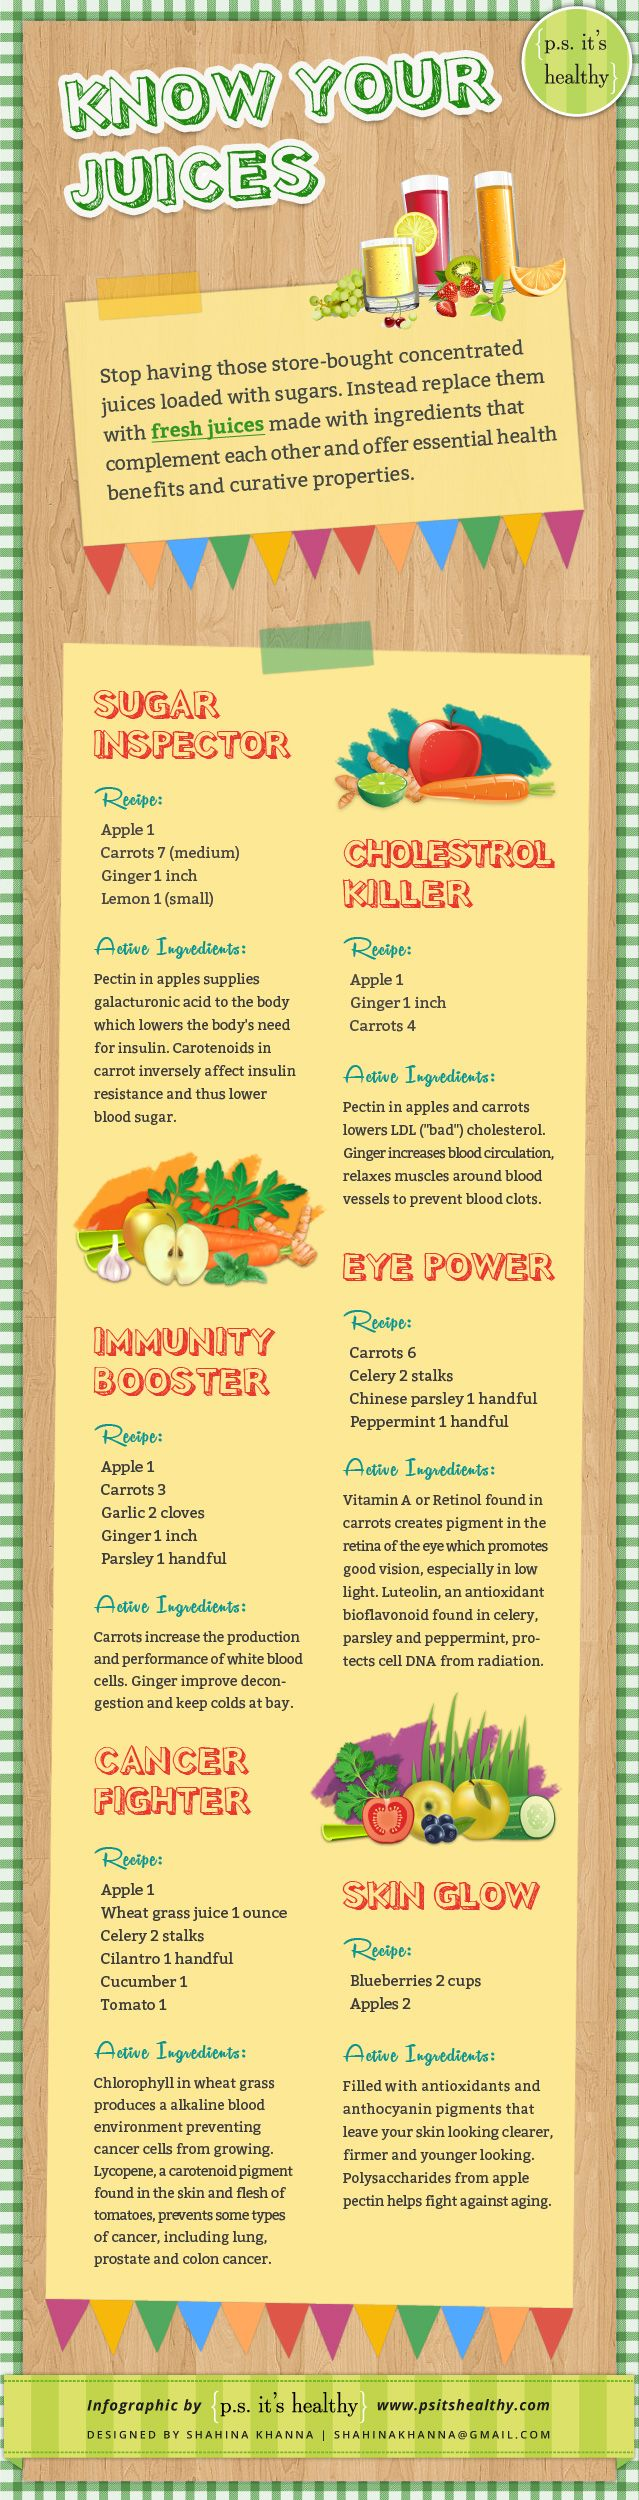 KNOW your JUICES Infographic. Simple tips and recipes on how to make the right juices.